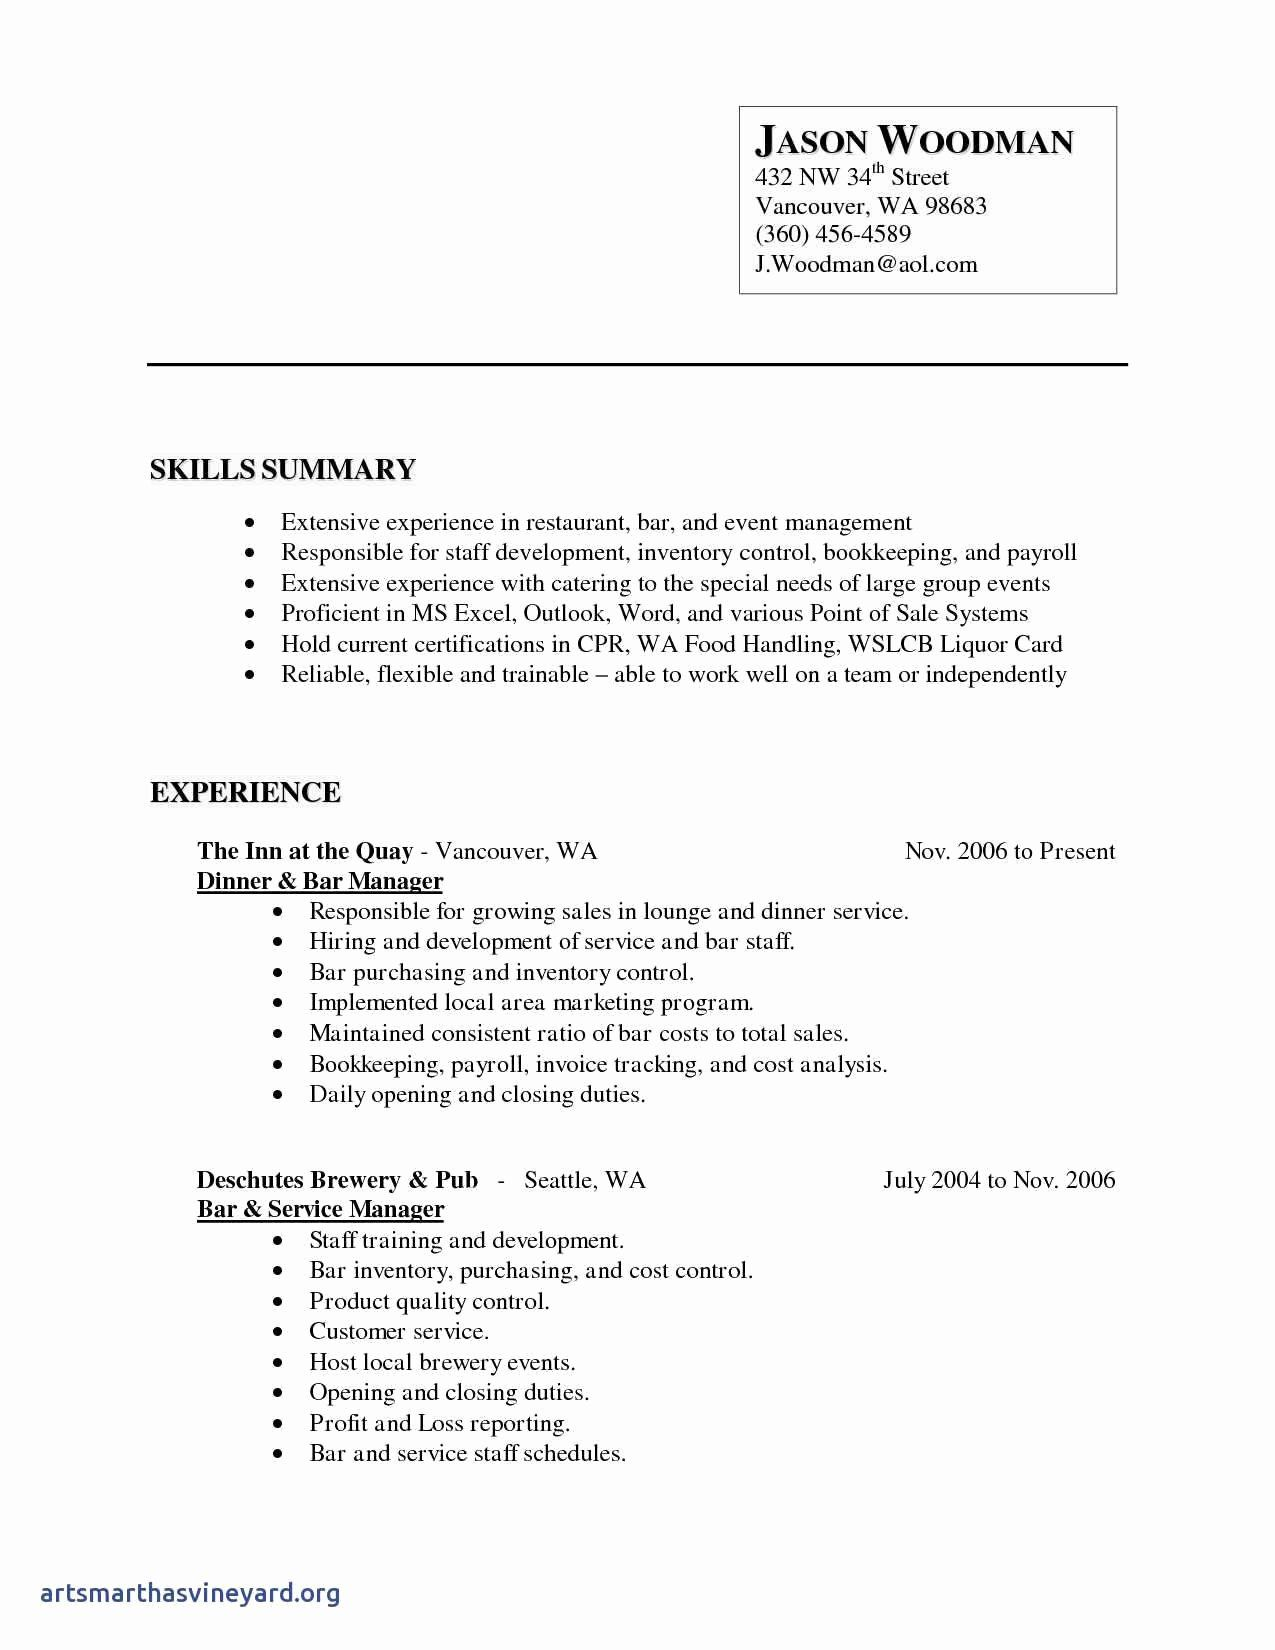 Blank Printable Bill Of Sale Awesome Free Invoice Template Microsoft Word Ghabon Sample Resume Templates Resume Template Professional Resume Template Free